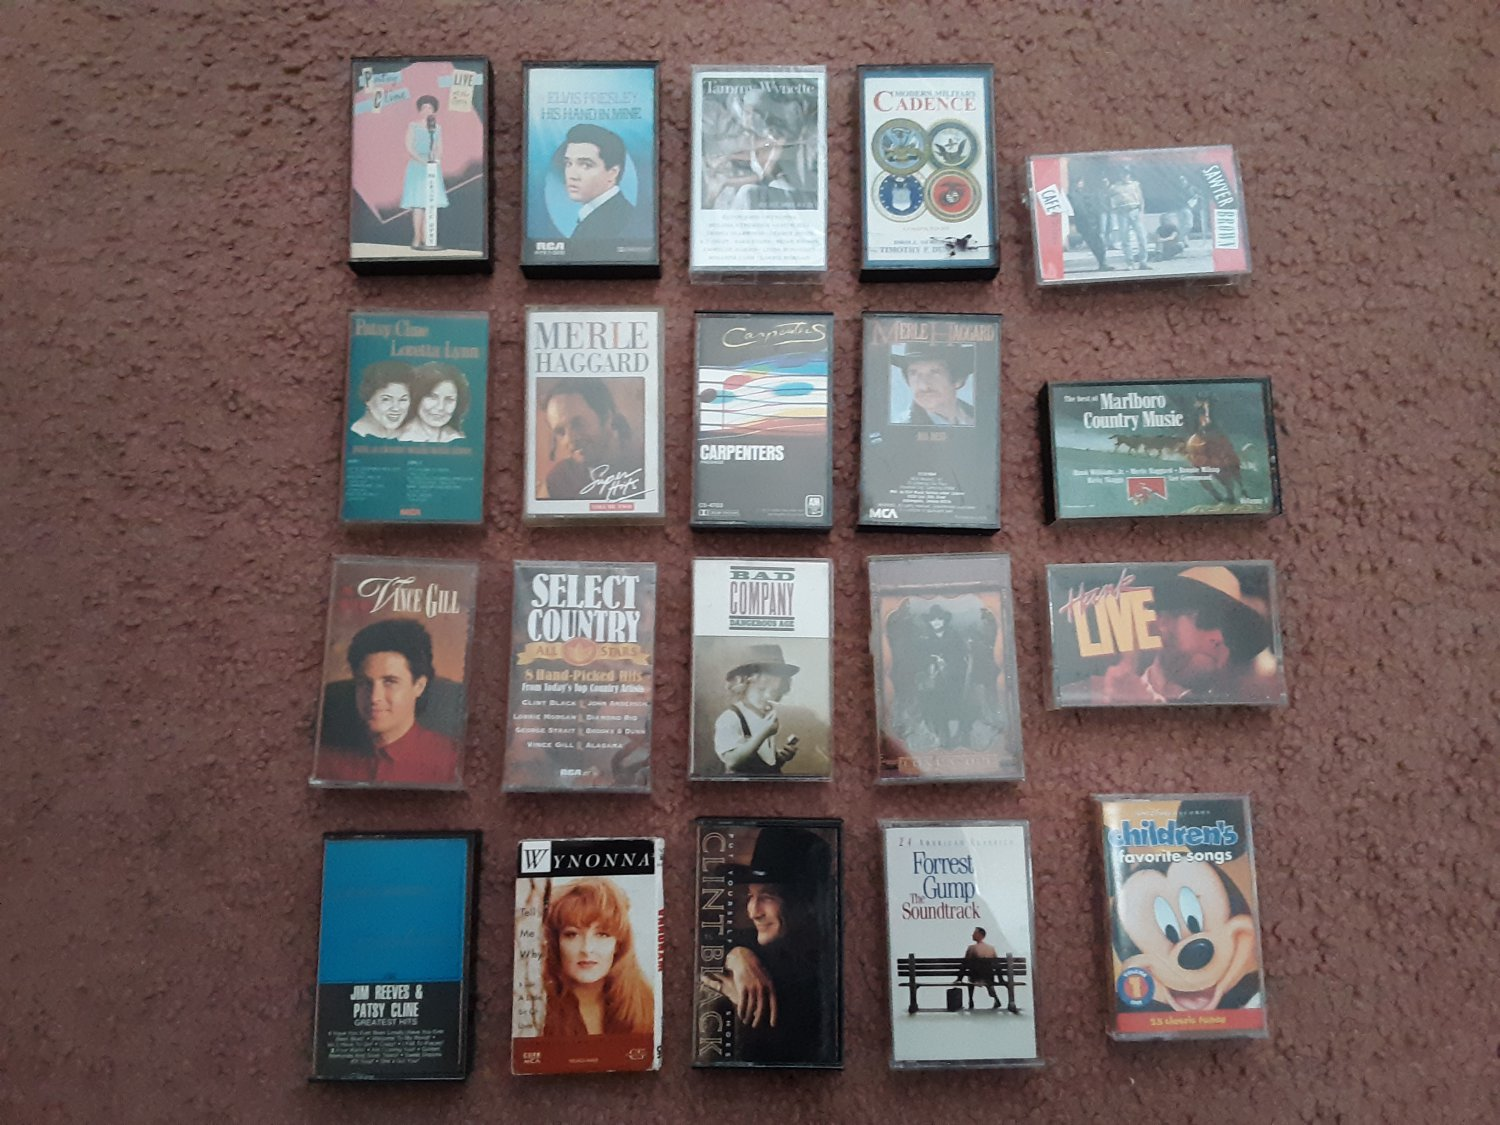 Lot of 20 Classic Country Cassettes - Patsy Cline - Loretta lynn - Merle Haggard - George Strait